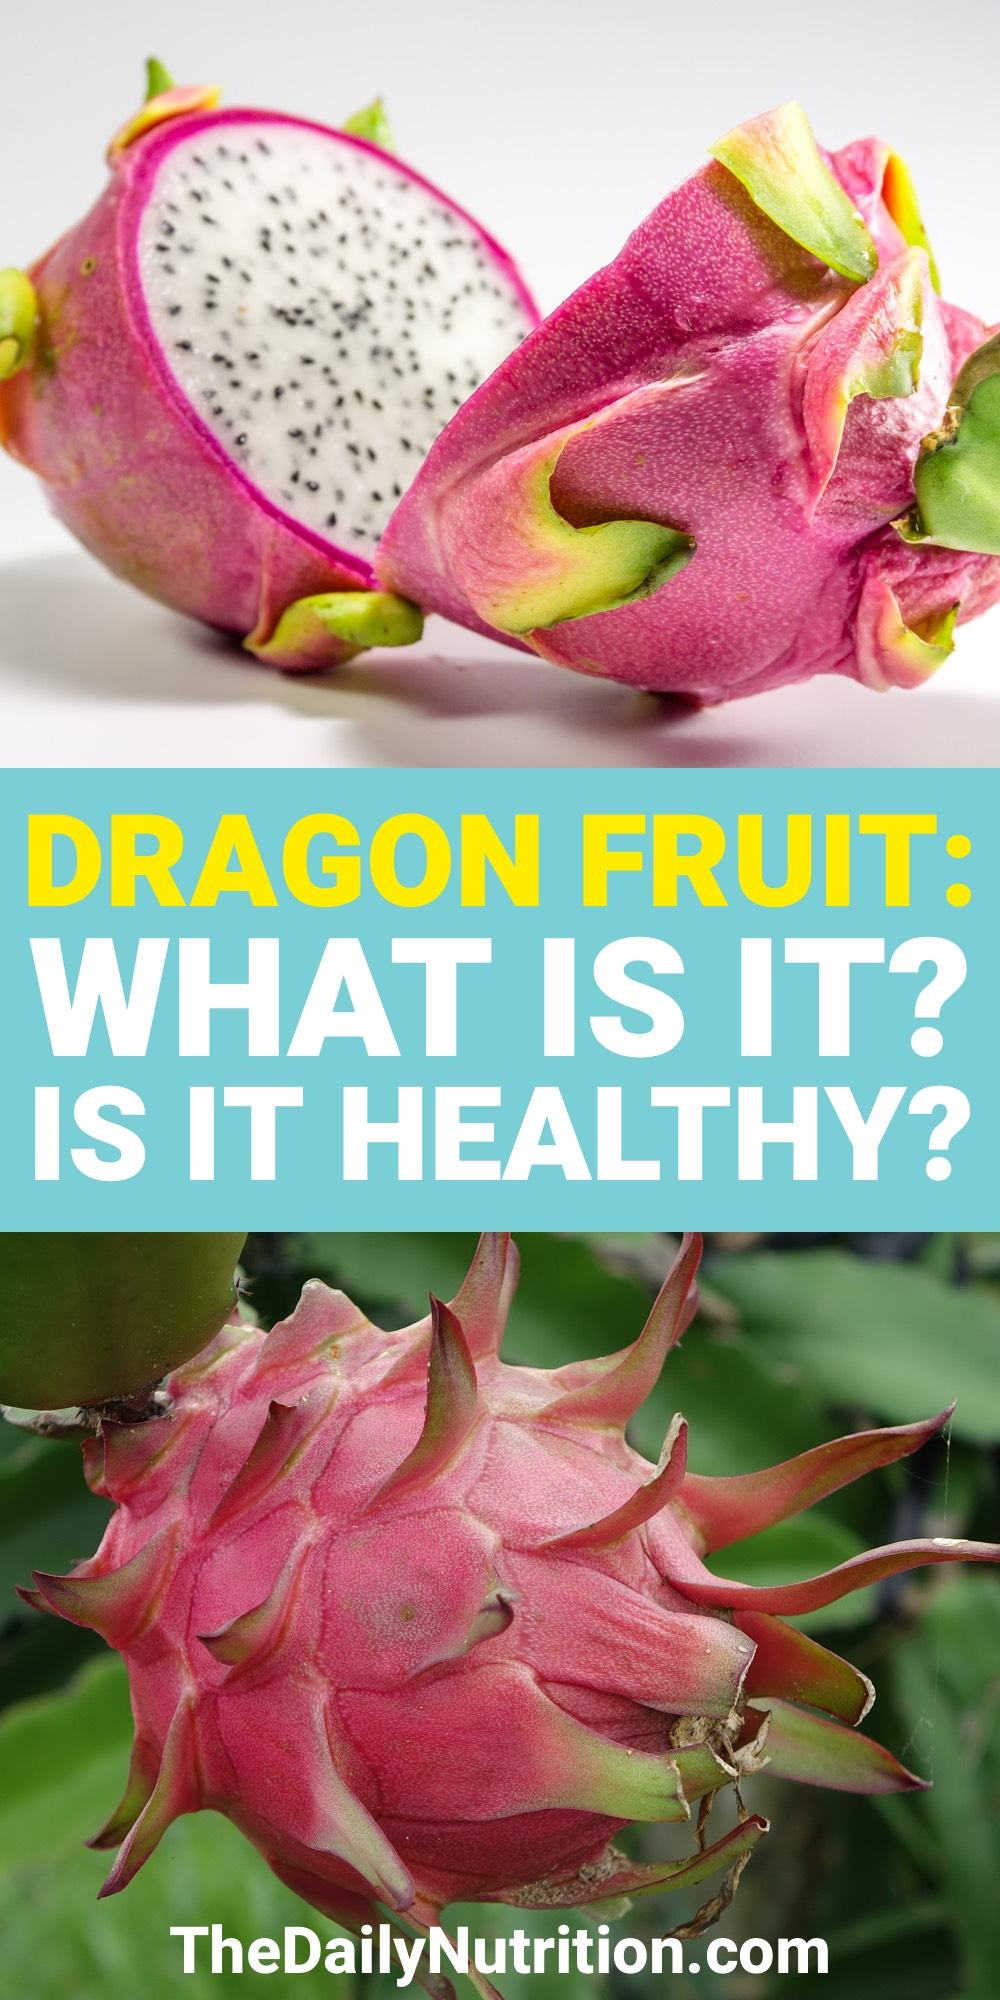 Dragon fruit is a very unique fruit. If you've never had it, you may be thinking what does dragon fruit taste like? Here, you can find the answer and much more about dragon fruit.